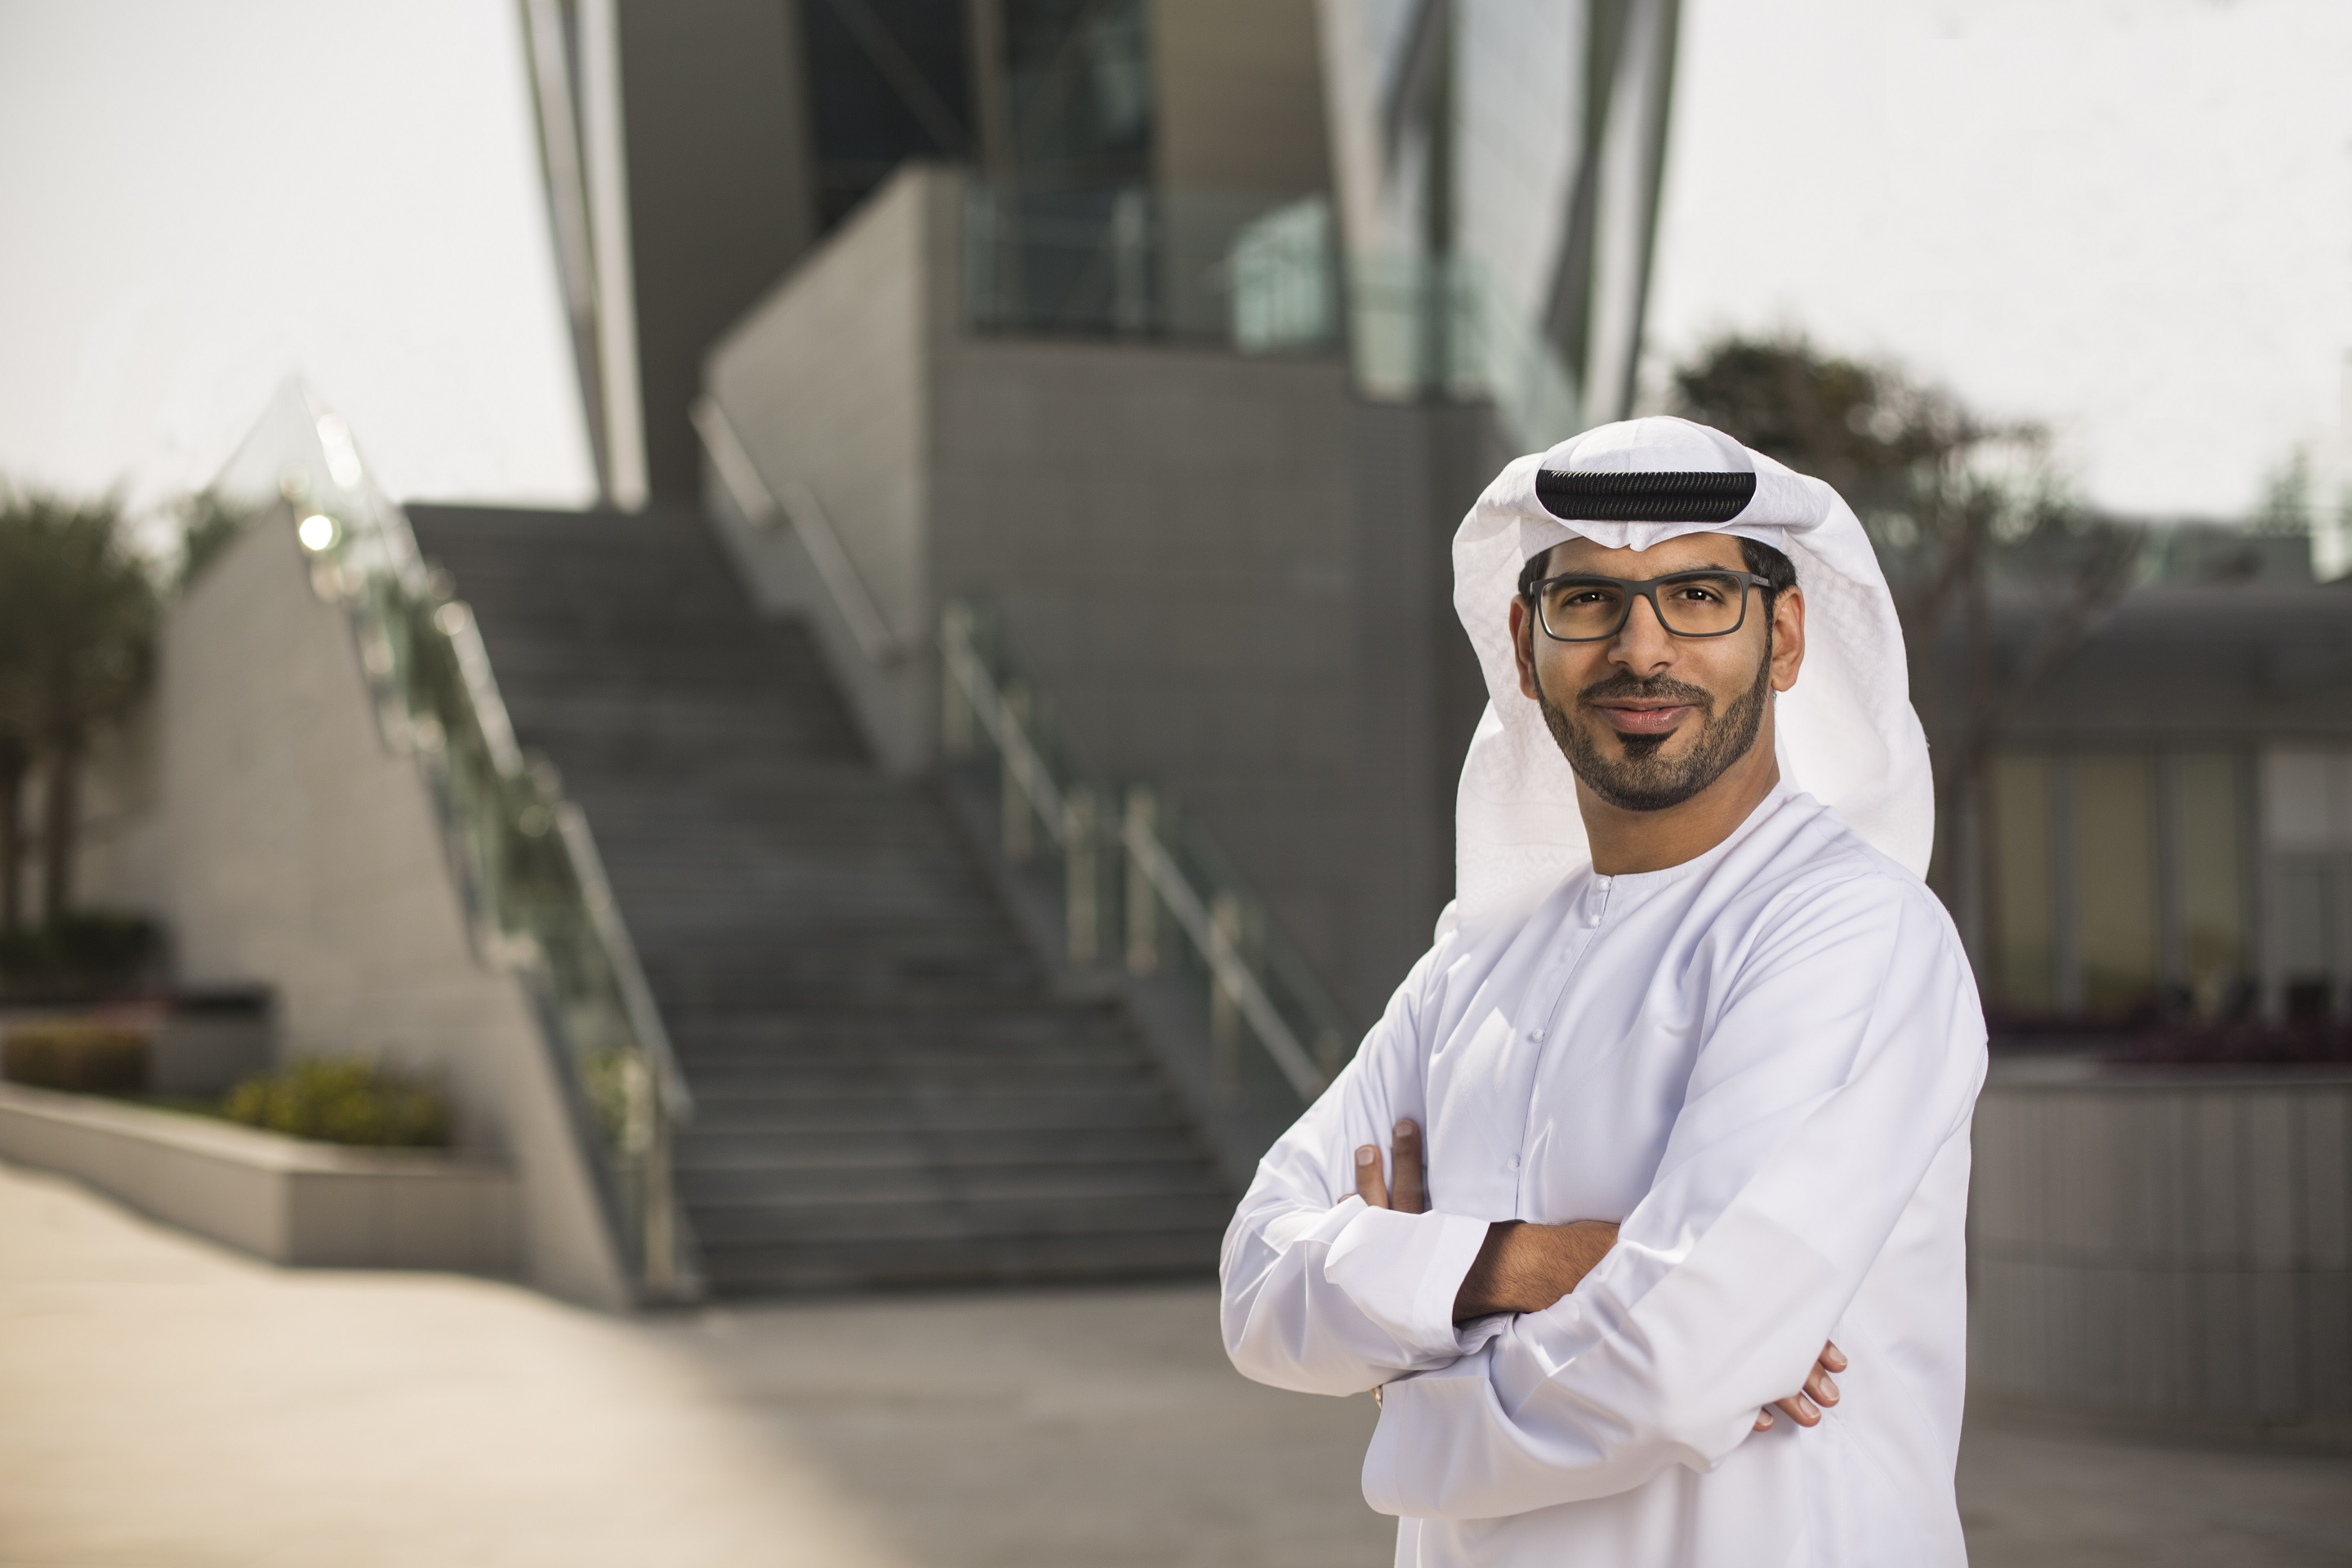 #28 Talal Al Dhiyebi, CEO of Aldar Properties